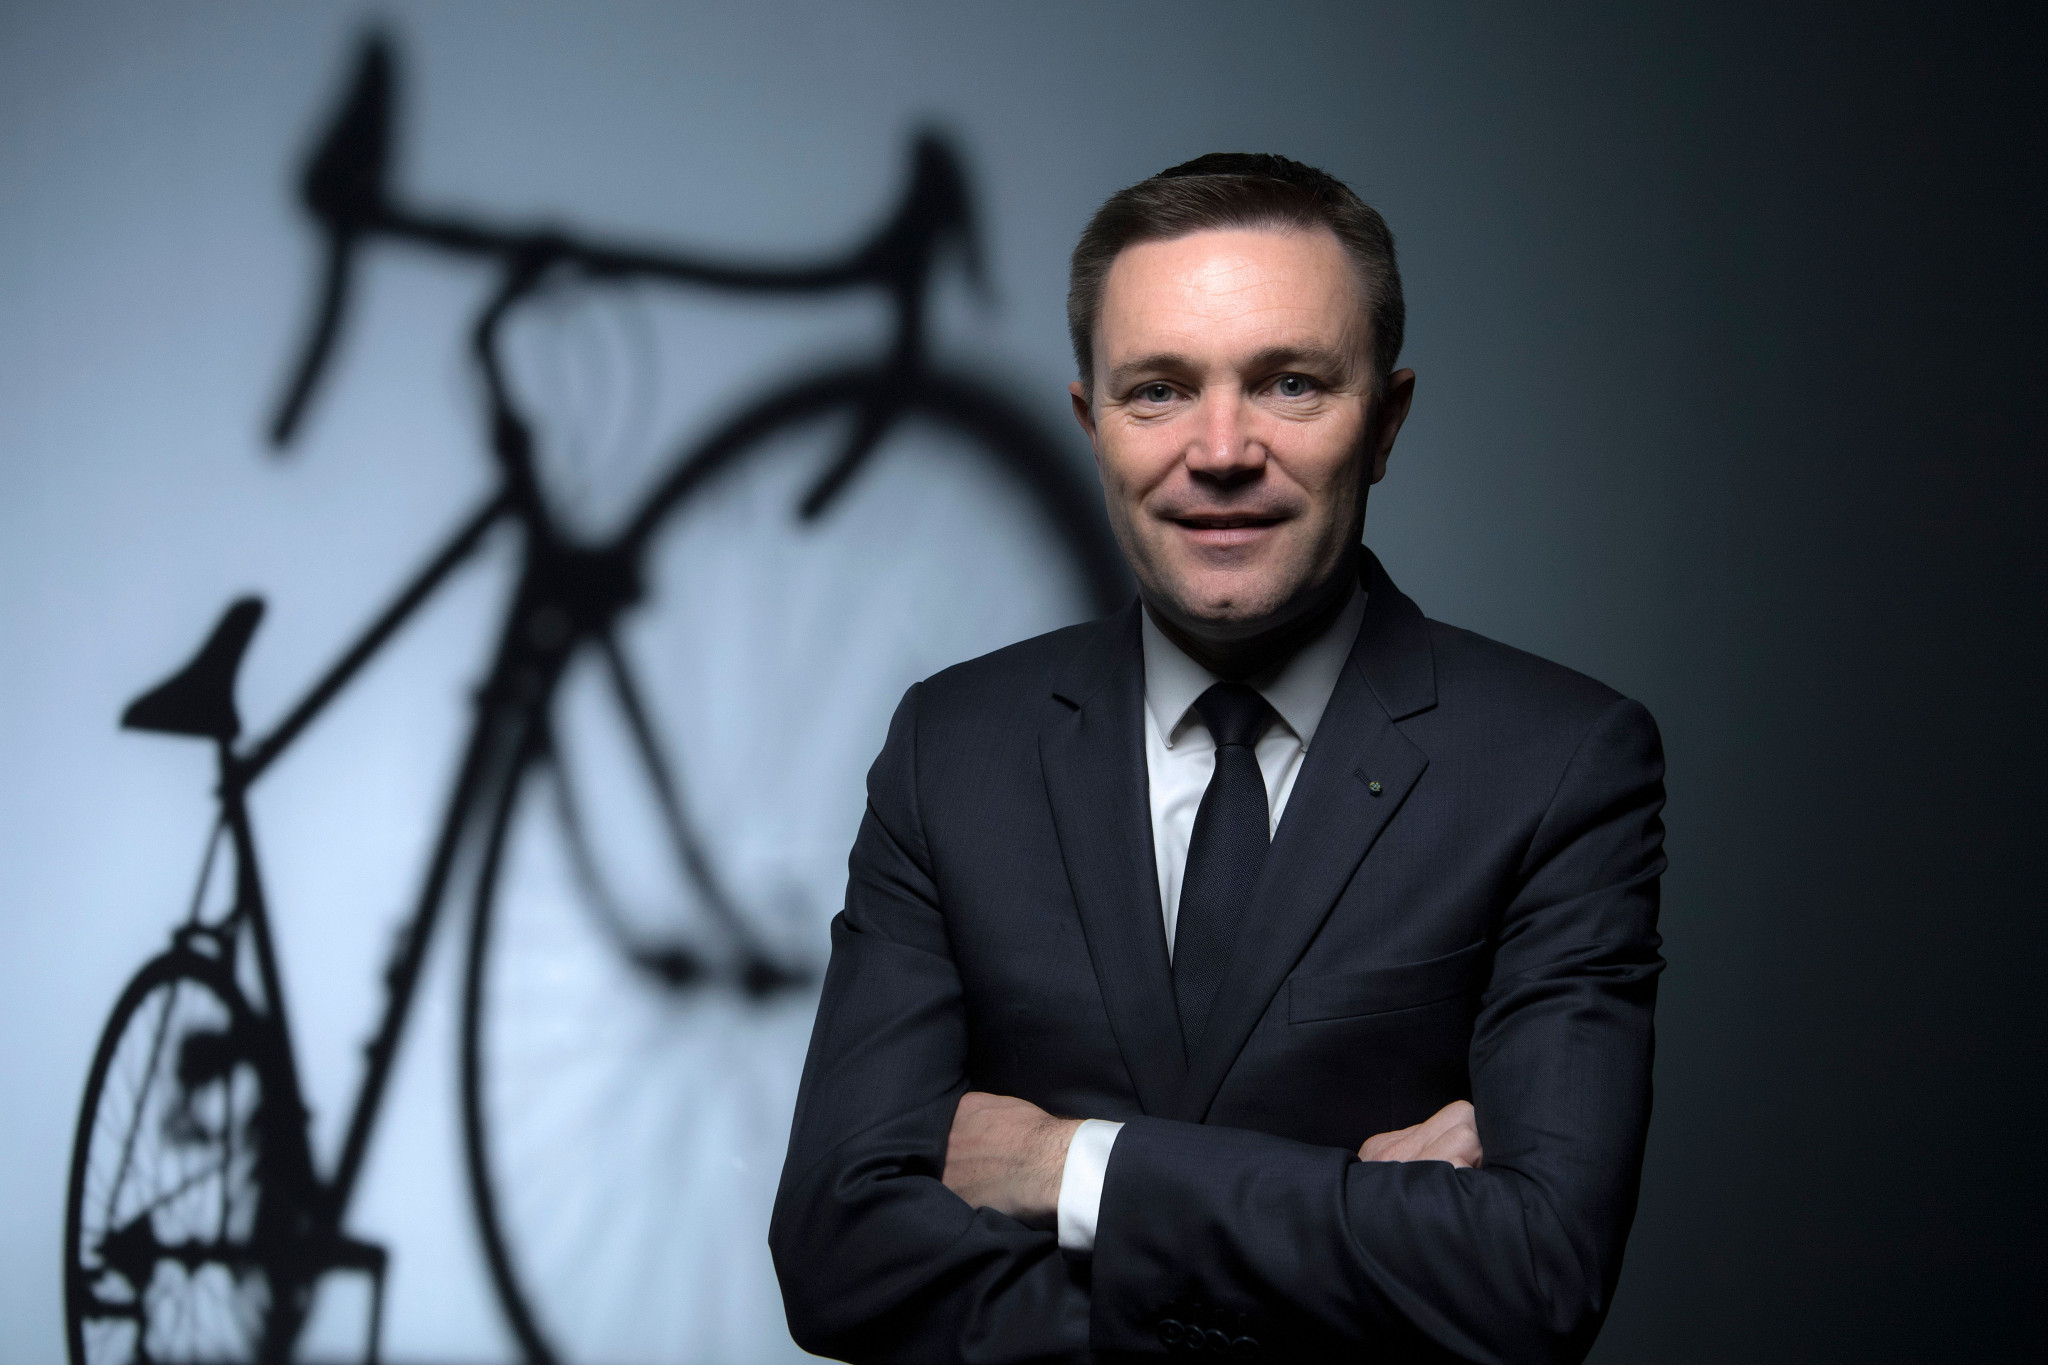 David Lappartient officially re-elected for second term as UCI President after standing unopposed